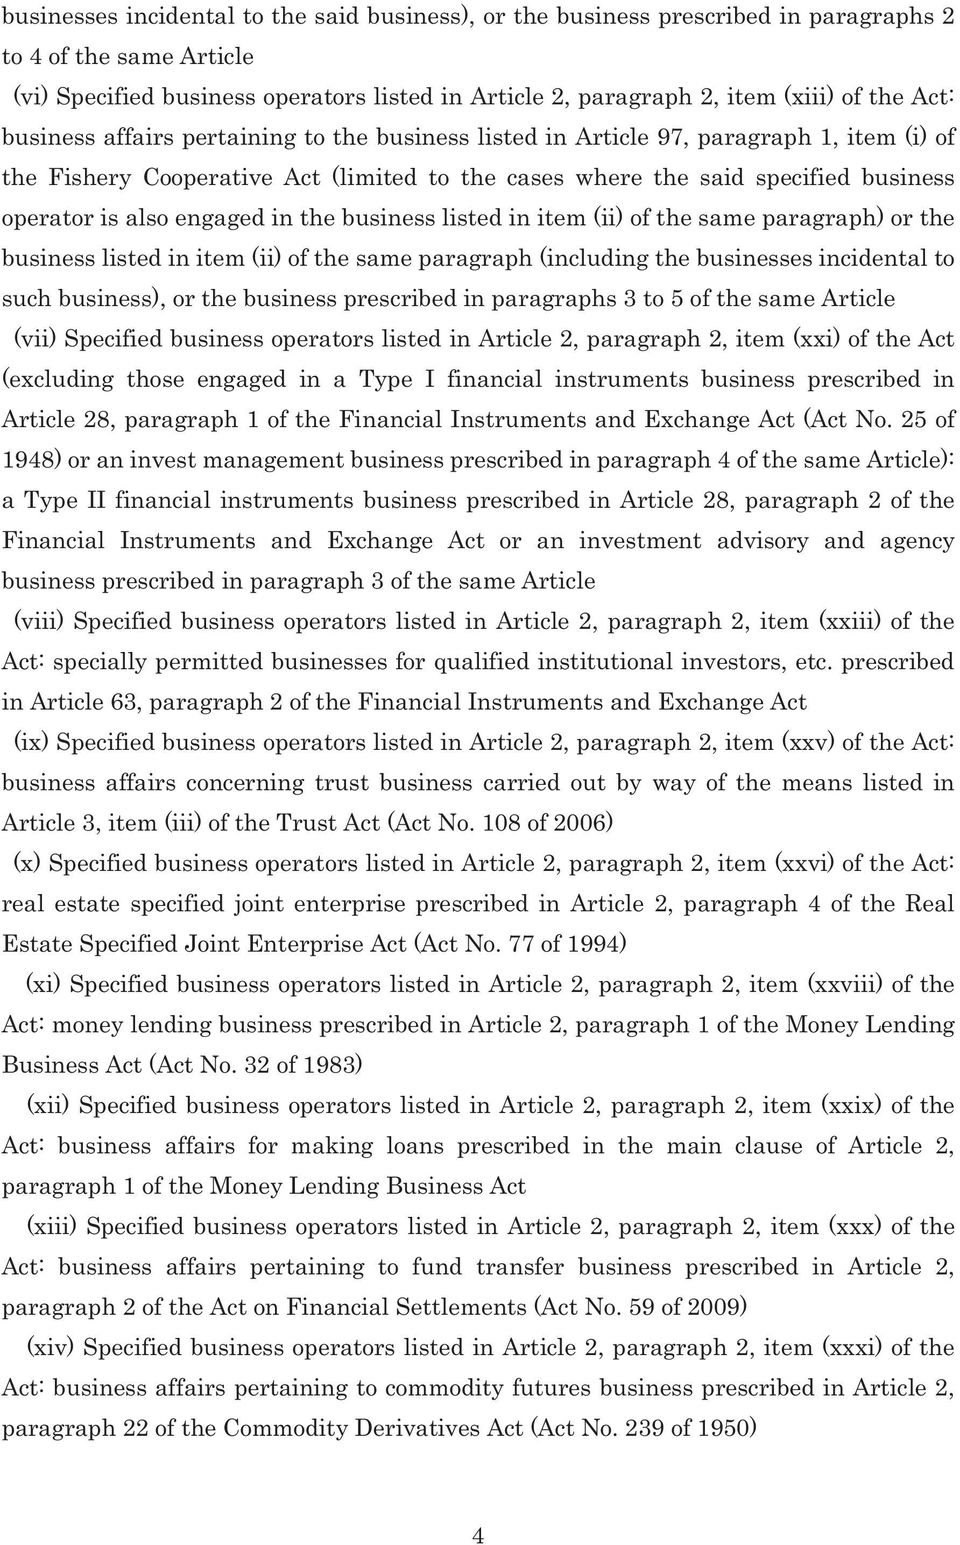 engaged in the business listed in item (ii) of the same paragraph) or the business listed in item (ii) of the same paragraph (including the businesses incidental to such business), or the business